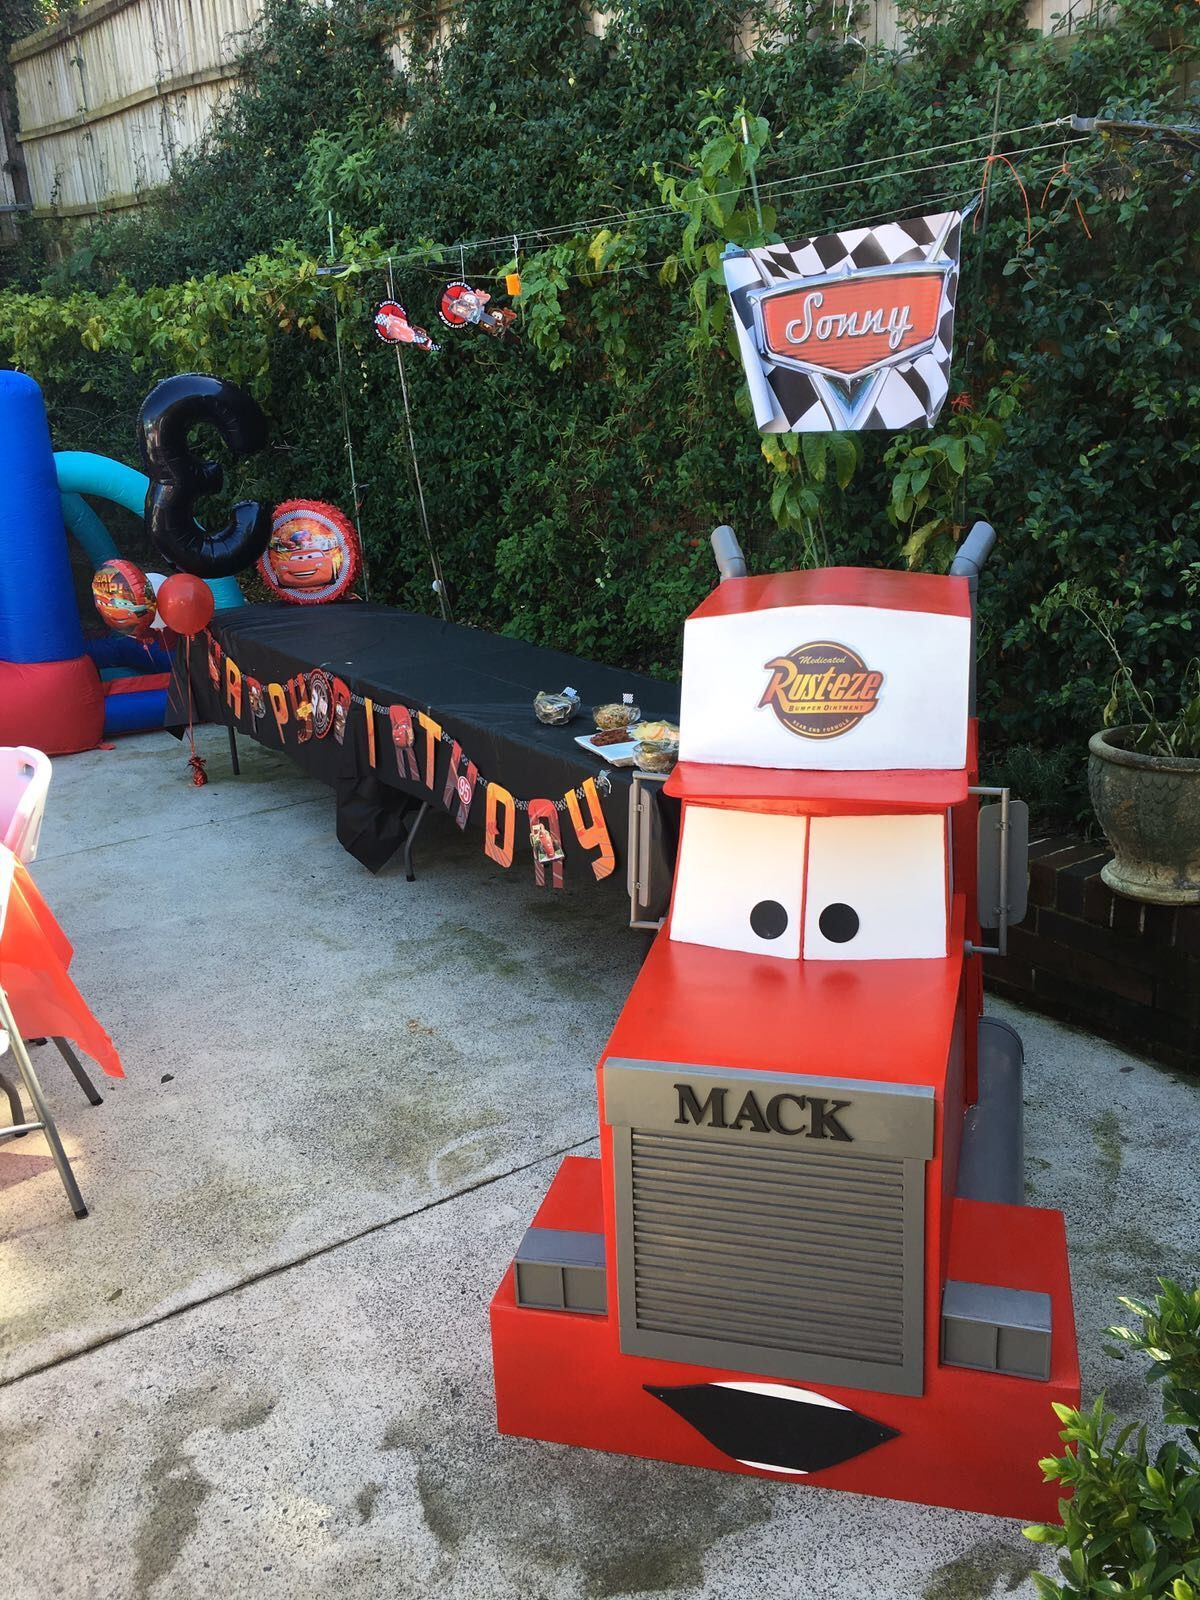 Disney Cars Party Mack Truck Party Table Cars Birthday Party Disney Disney Cars Party Cars Theme Birthday Party